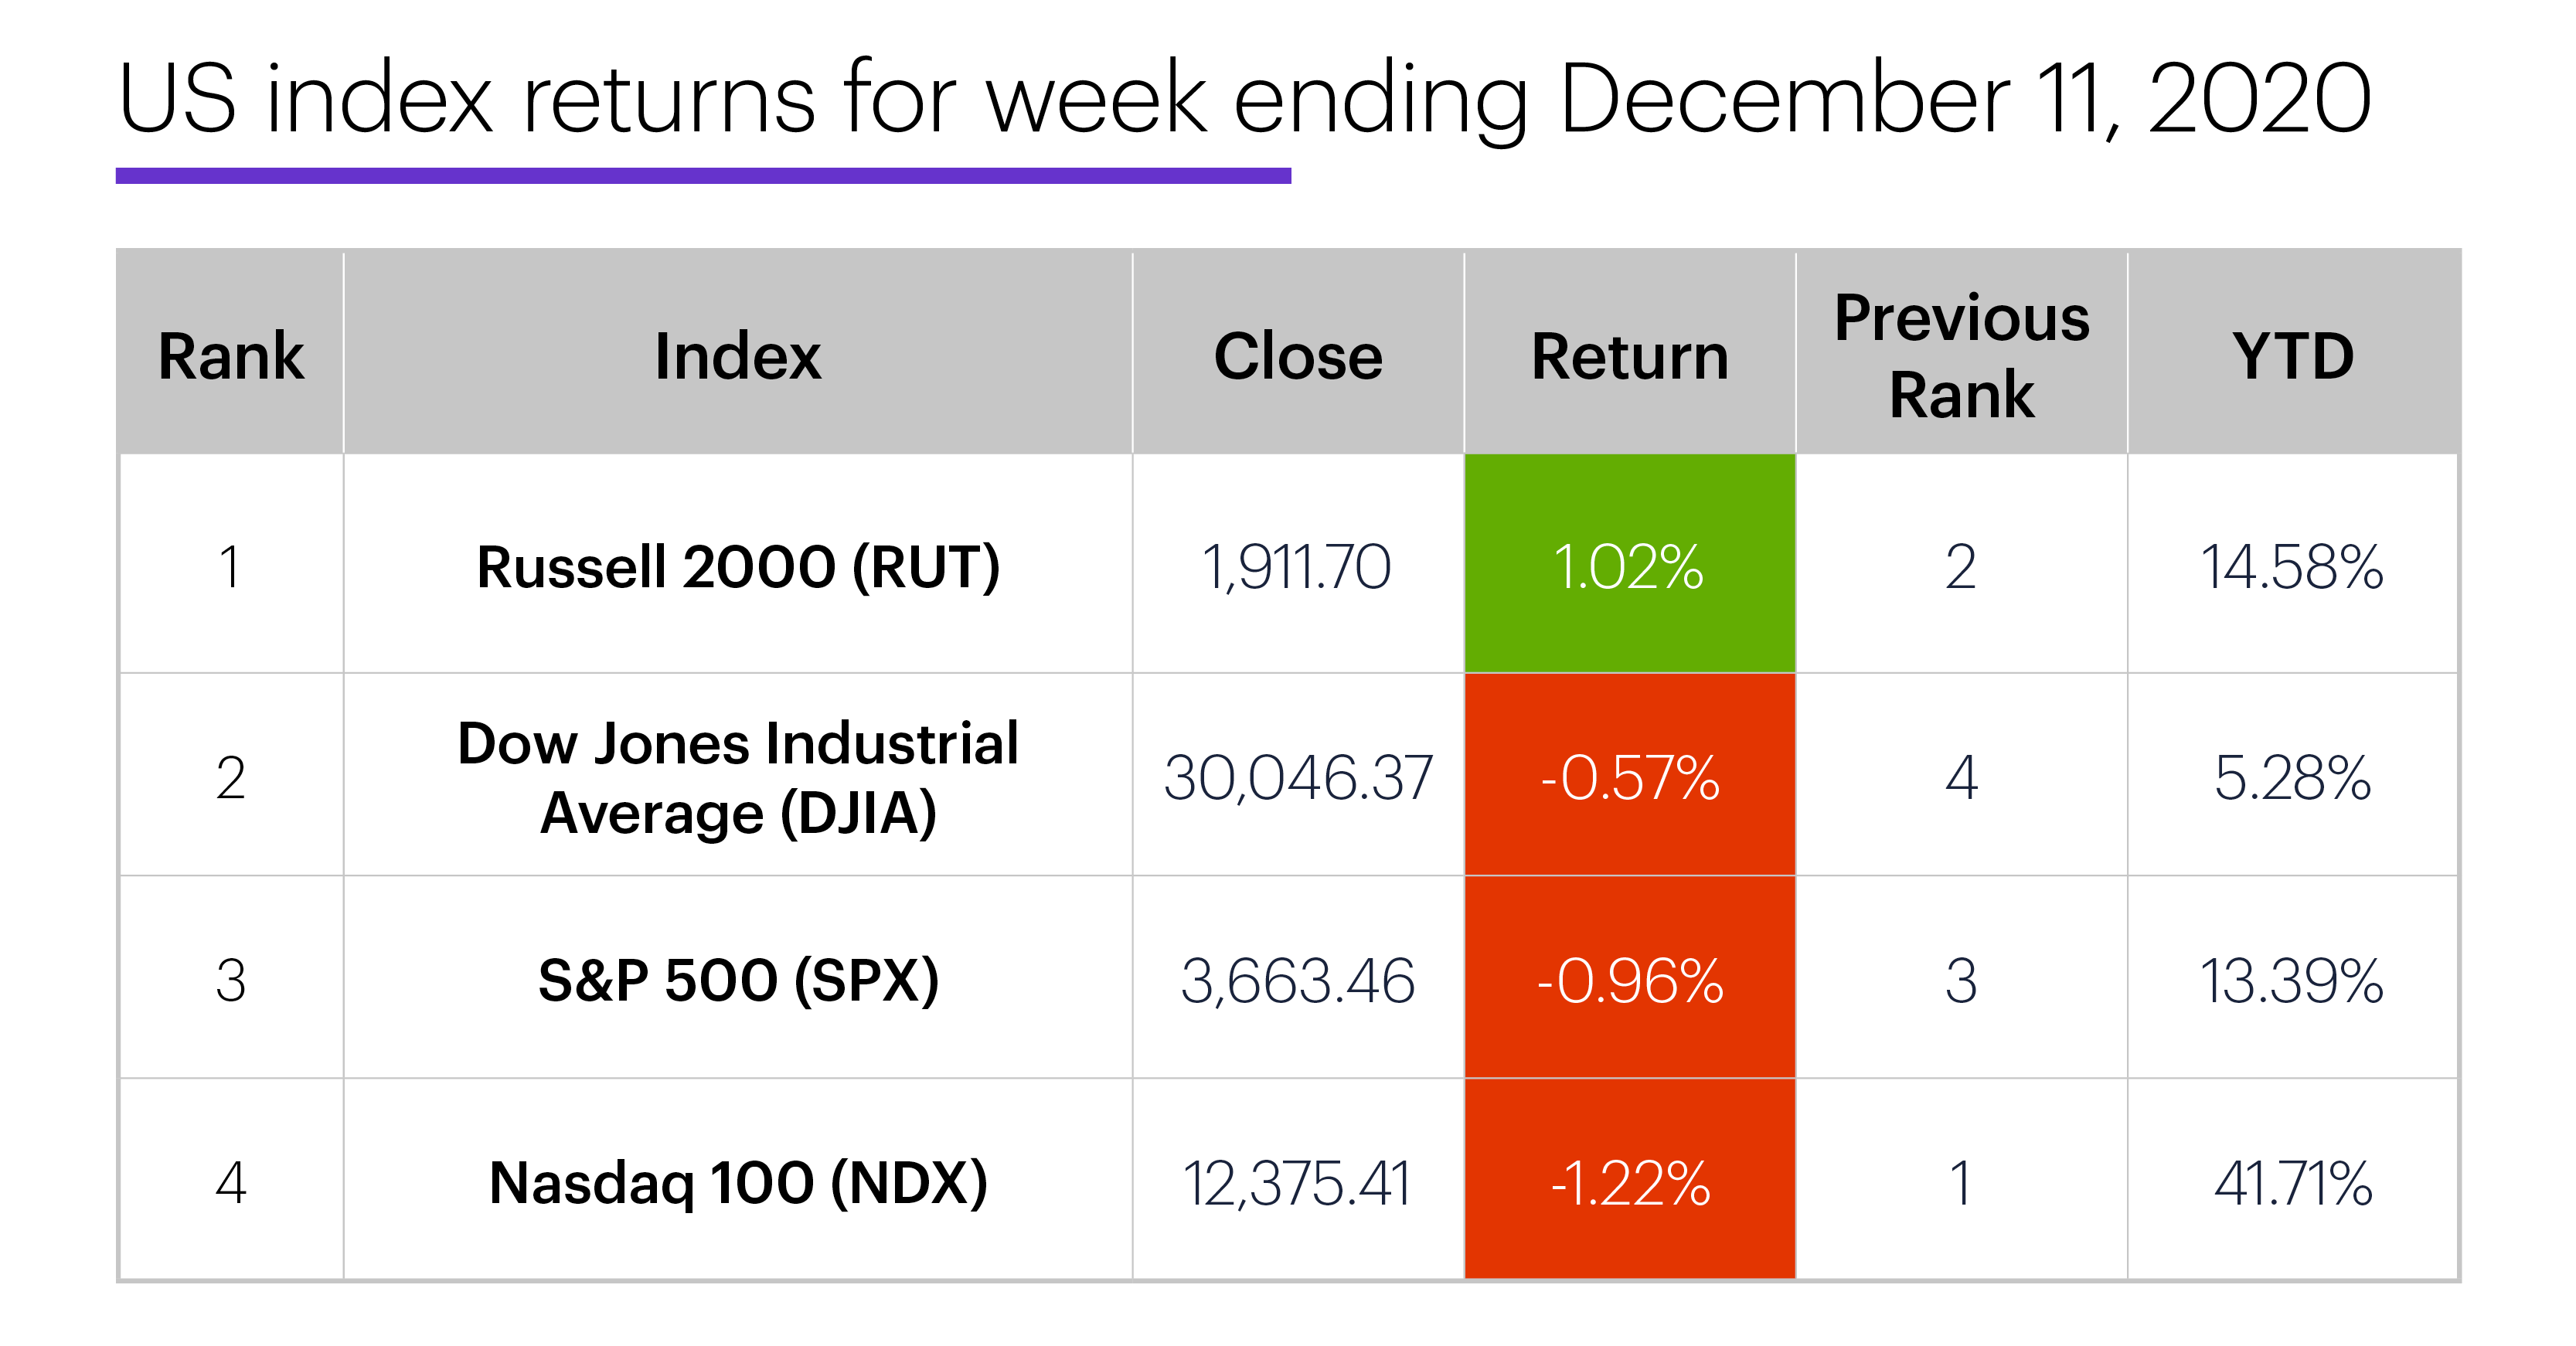 US stock index performance table for week ending 12/11/20. S&P 500 (SPX), Nasdaq 100 (NDX), Russell 2000 (RUT), Dow Jones Industrial Average (DJIA).